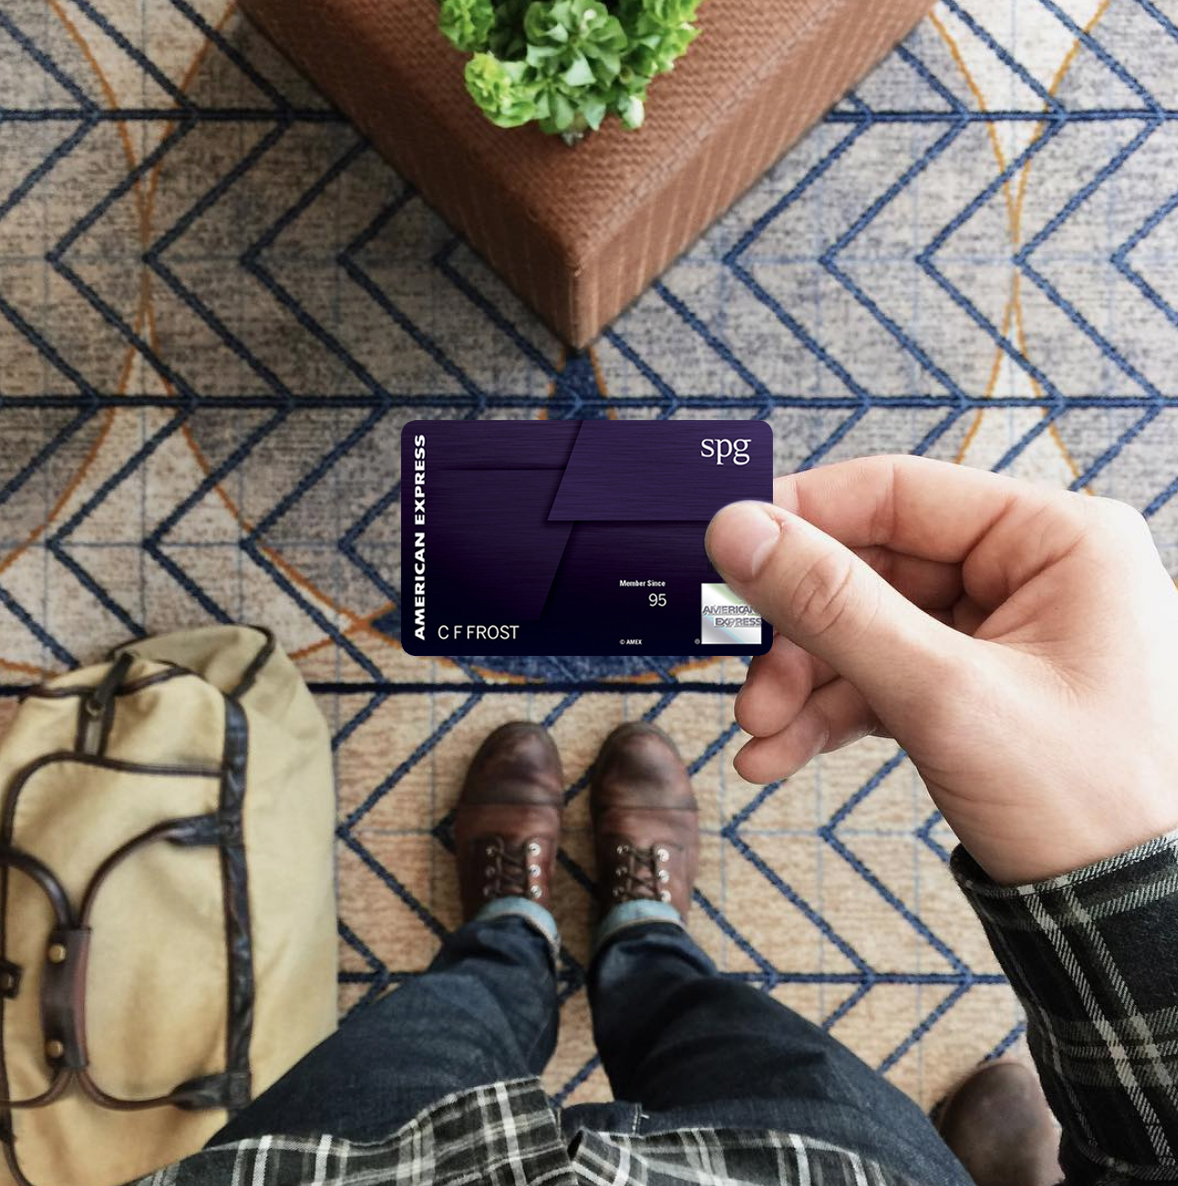 American express and marriott unveil new and refreshed starwood american express and marriott unveil new and refreshed starwood preferred guest co branded credit cards business wire colourmoves